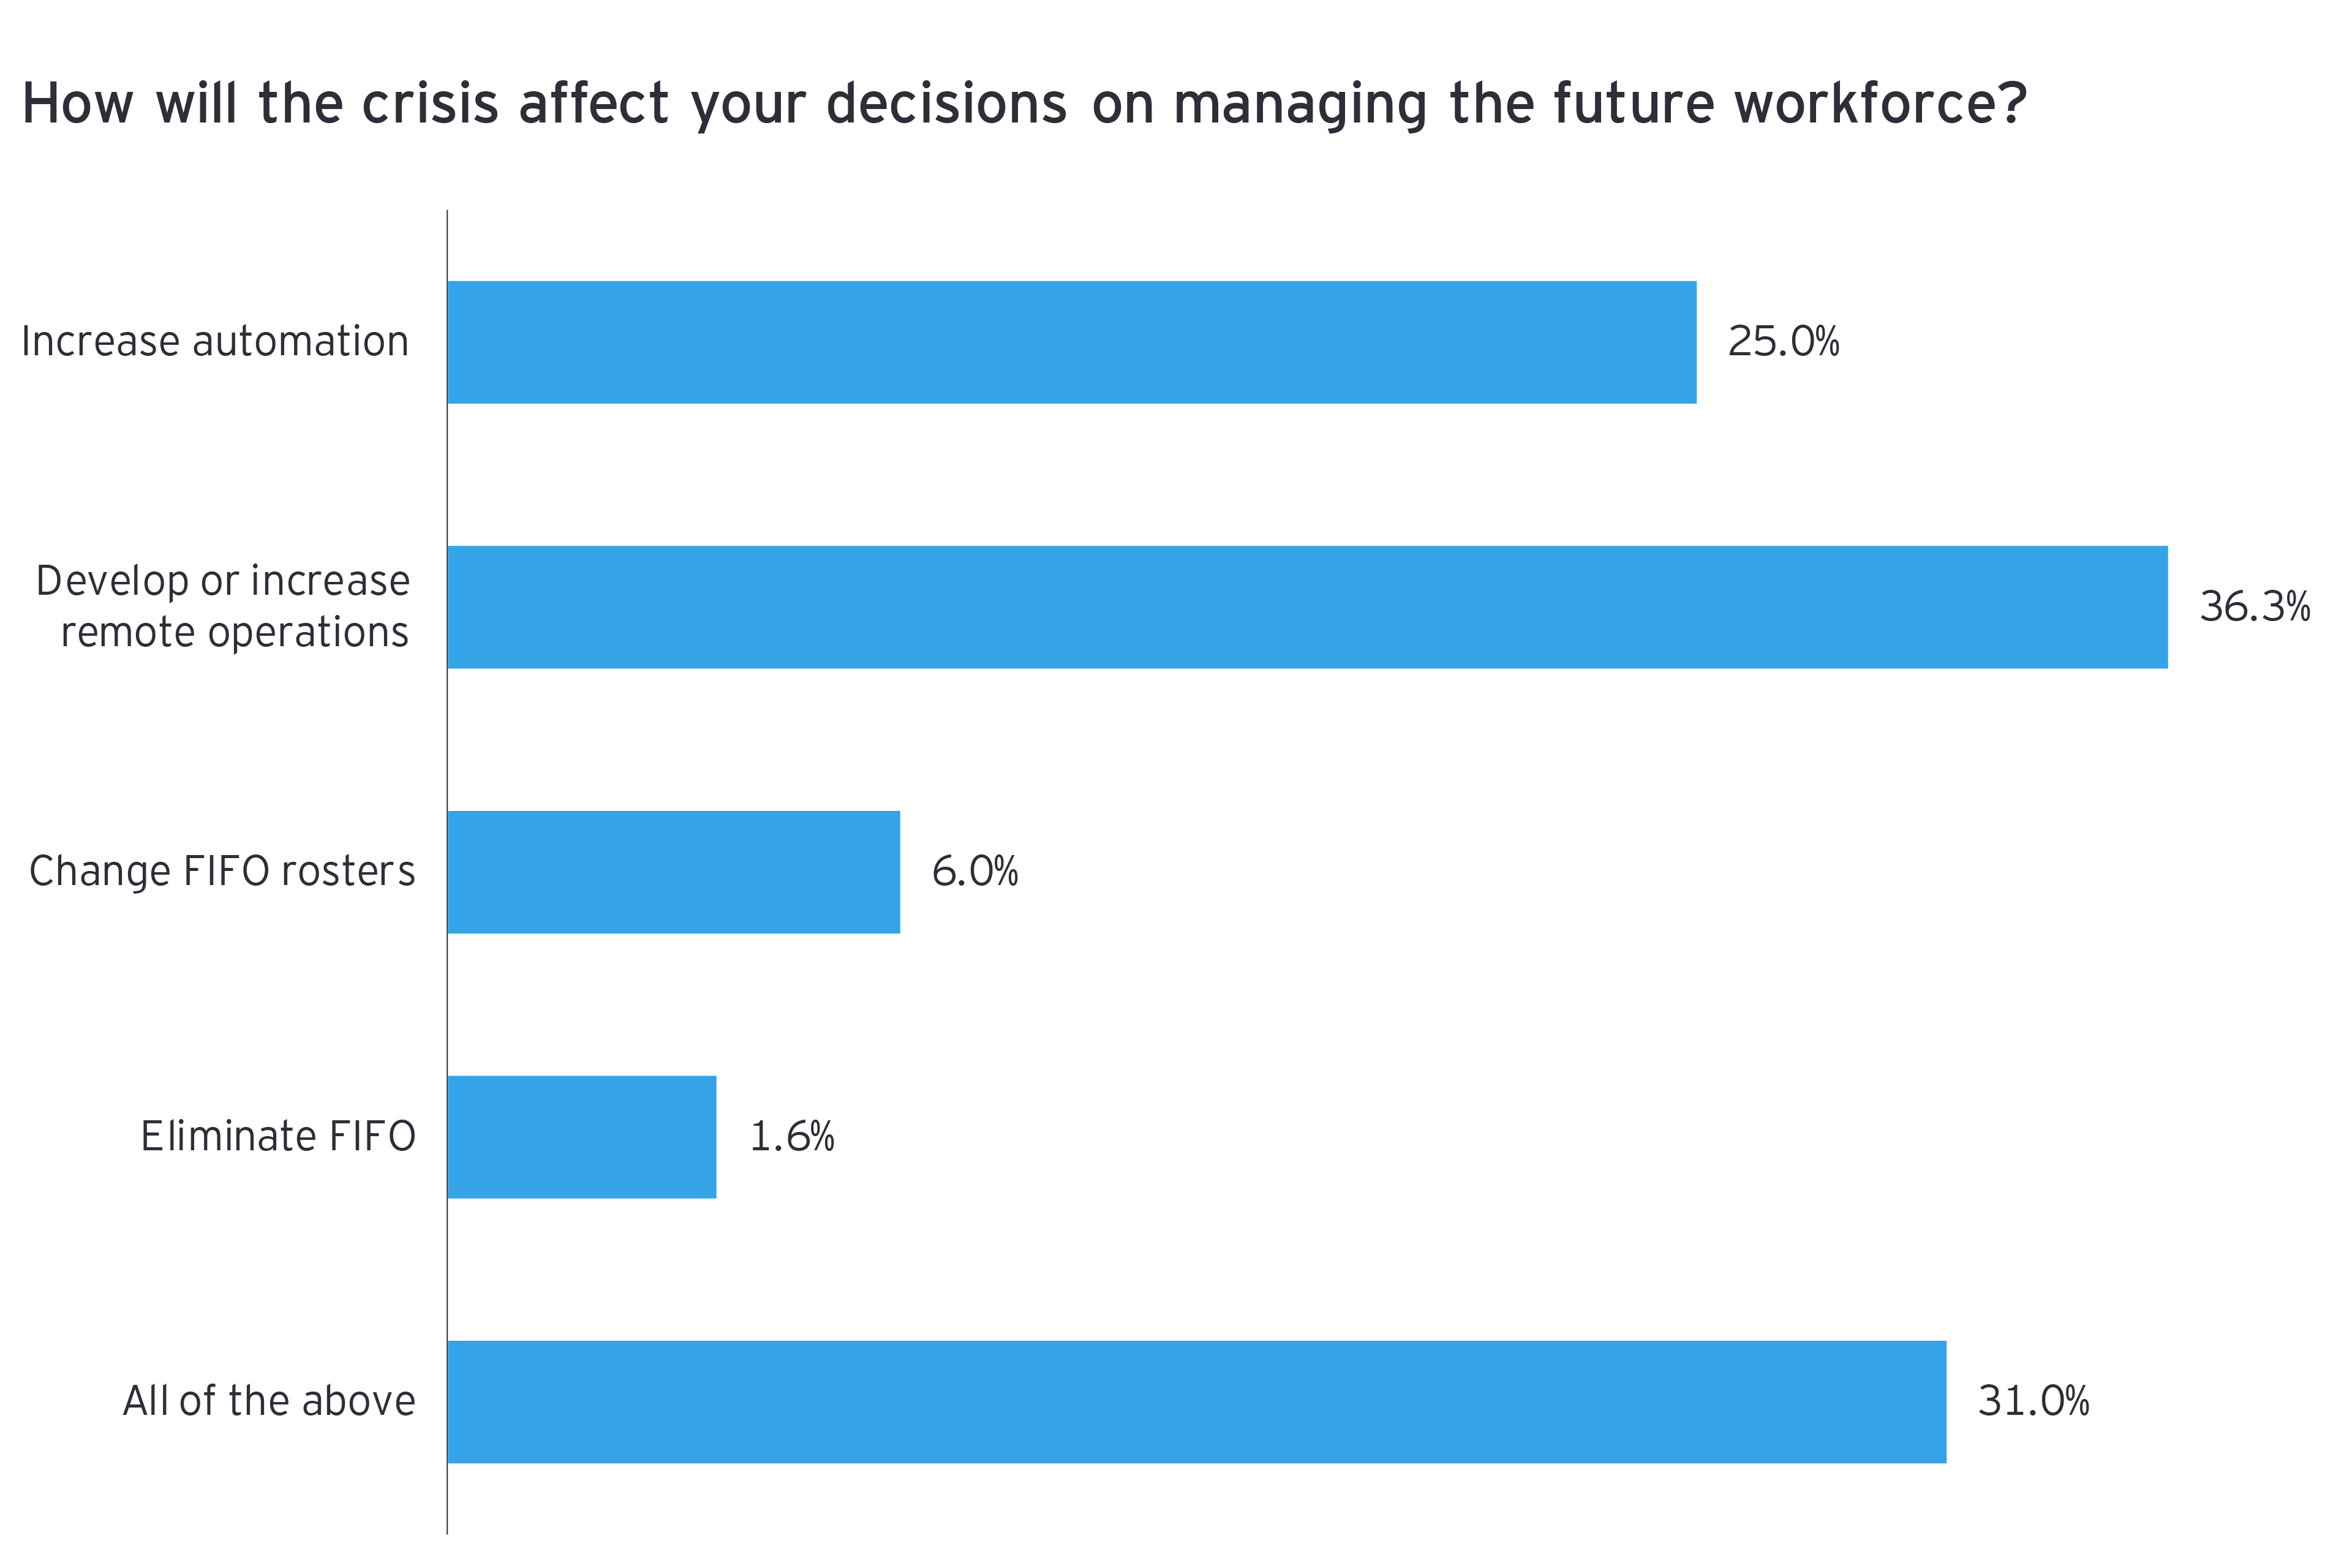 How will the crisis affect your decisions on managing future workforce